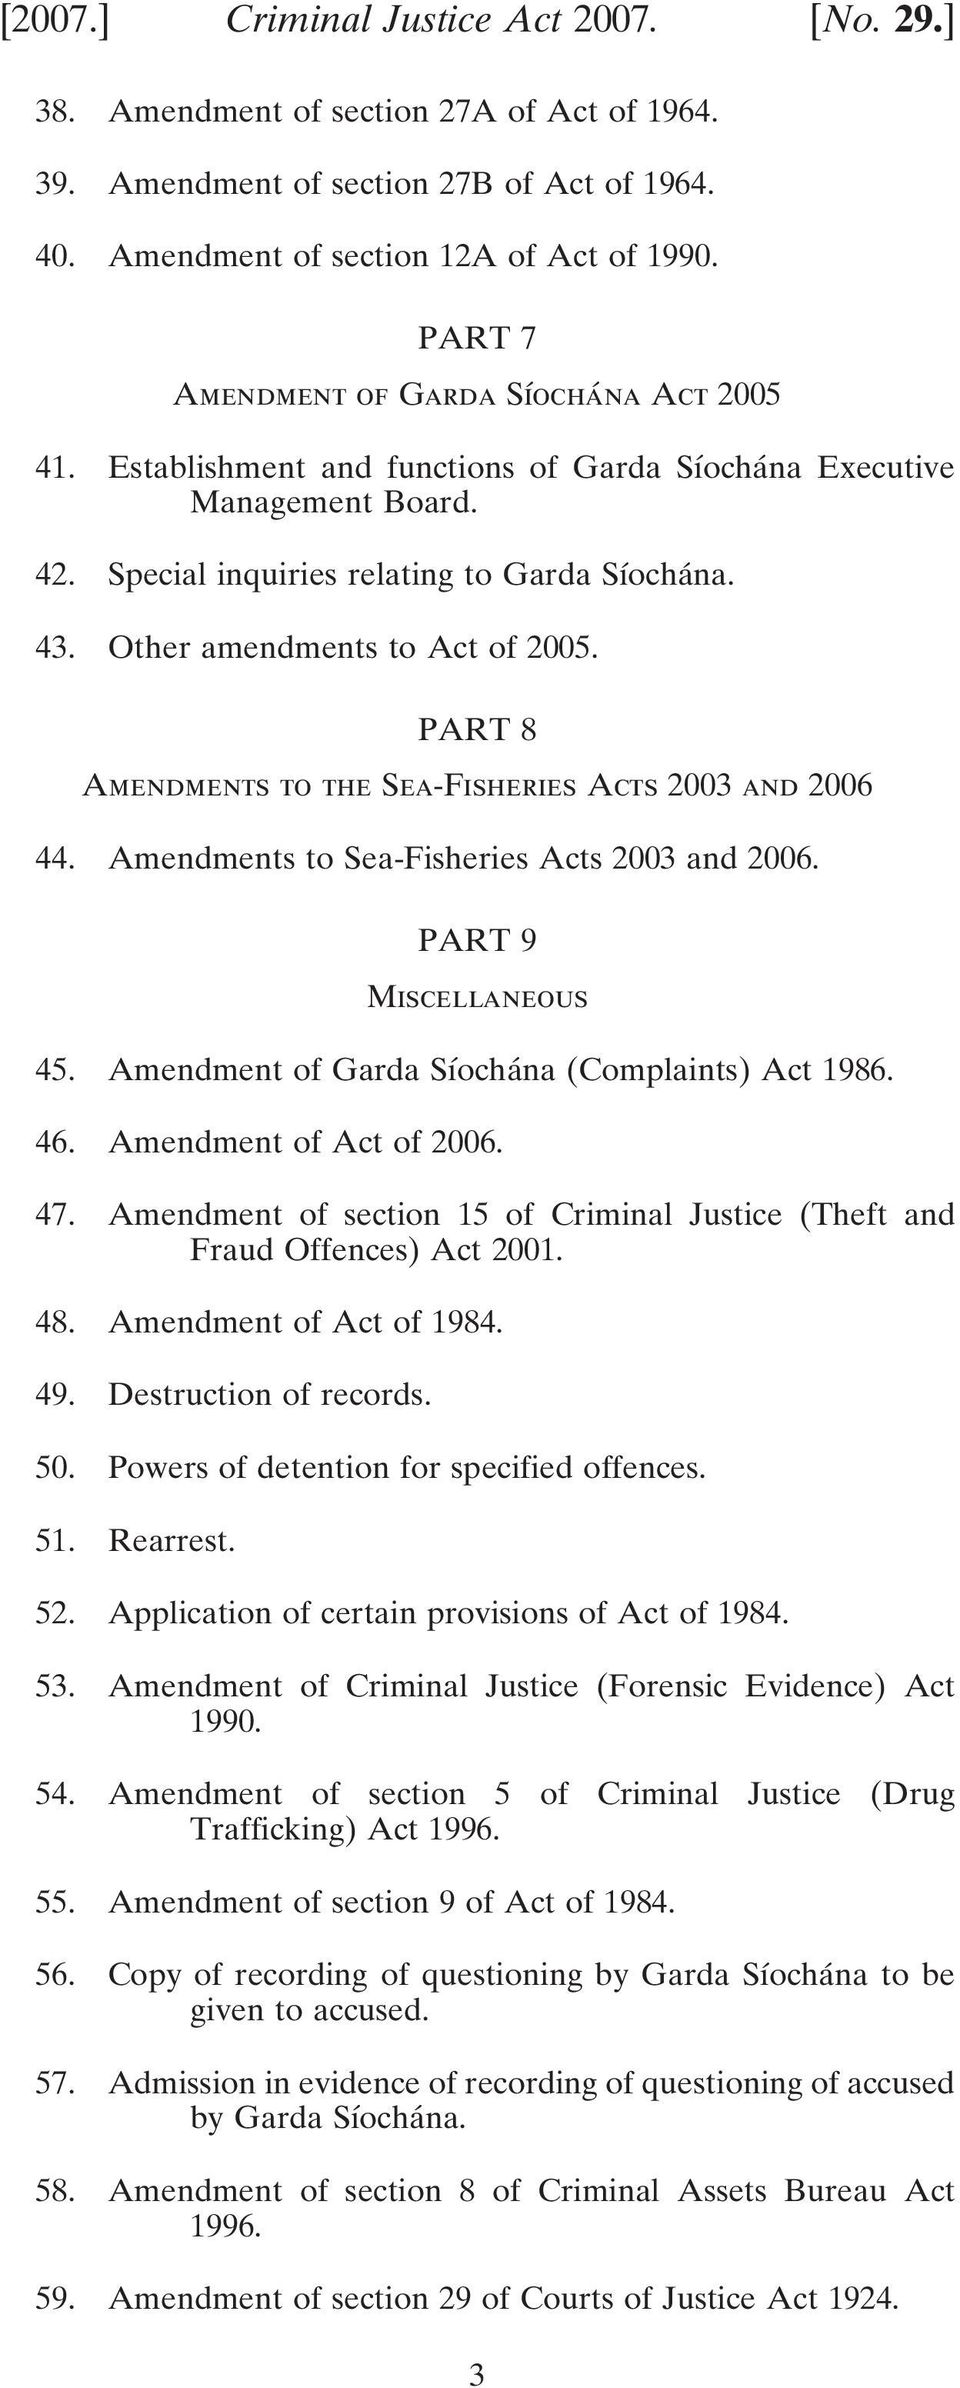 Other amendments to Act of 2005. PART 8 Amendments to the Sea-Fisheries Acts 2003 and 2006 44. Amendments to Sea-Fisheries Acts 2003 and 2006. PART 9 Miscellaneous 45.